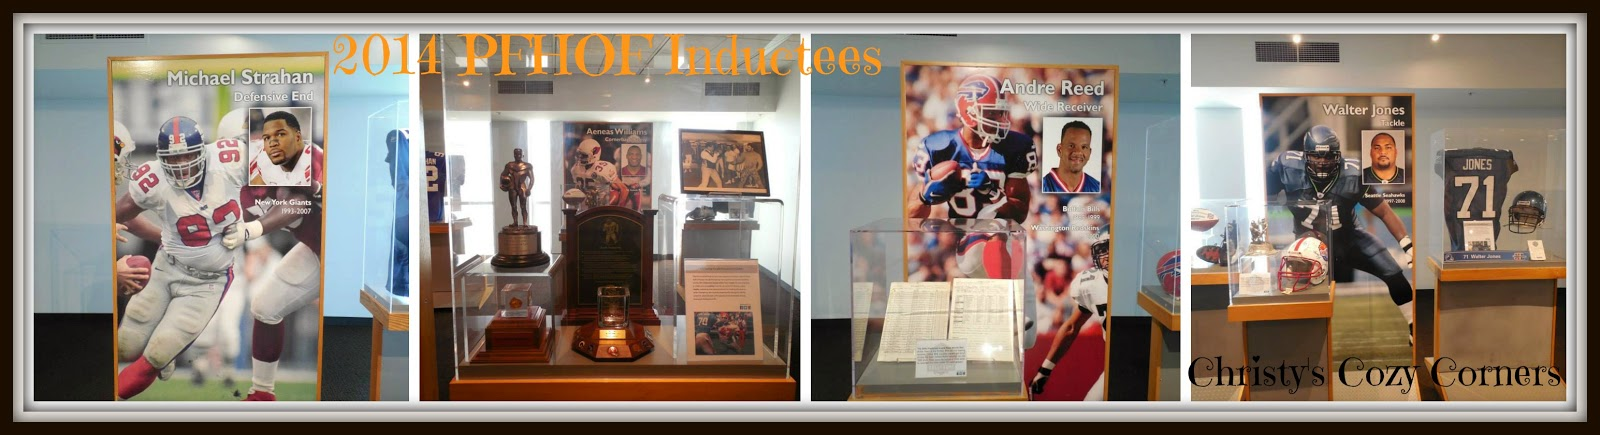 Visit the Pro Football Hall of Fame in Canton, Ohio